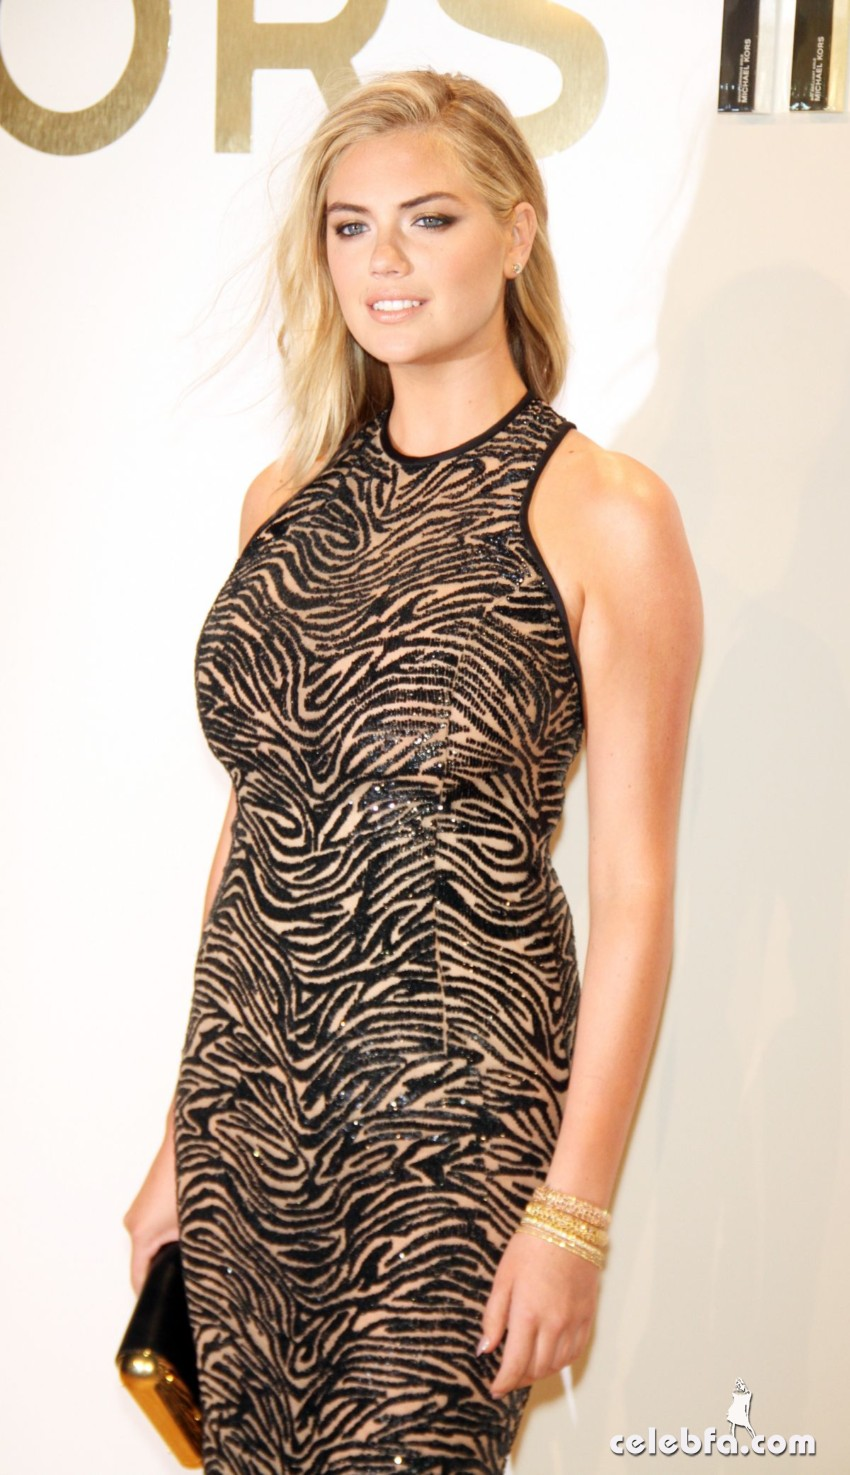 kate-upton-at-gold-collection-fragrance-launch-by-michael-kors-in-new-york (1)